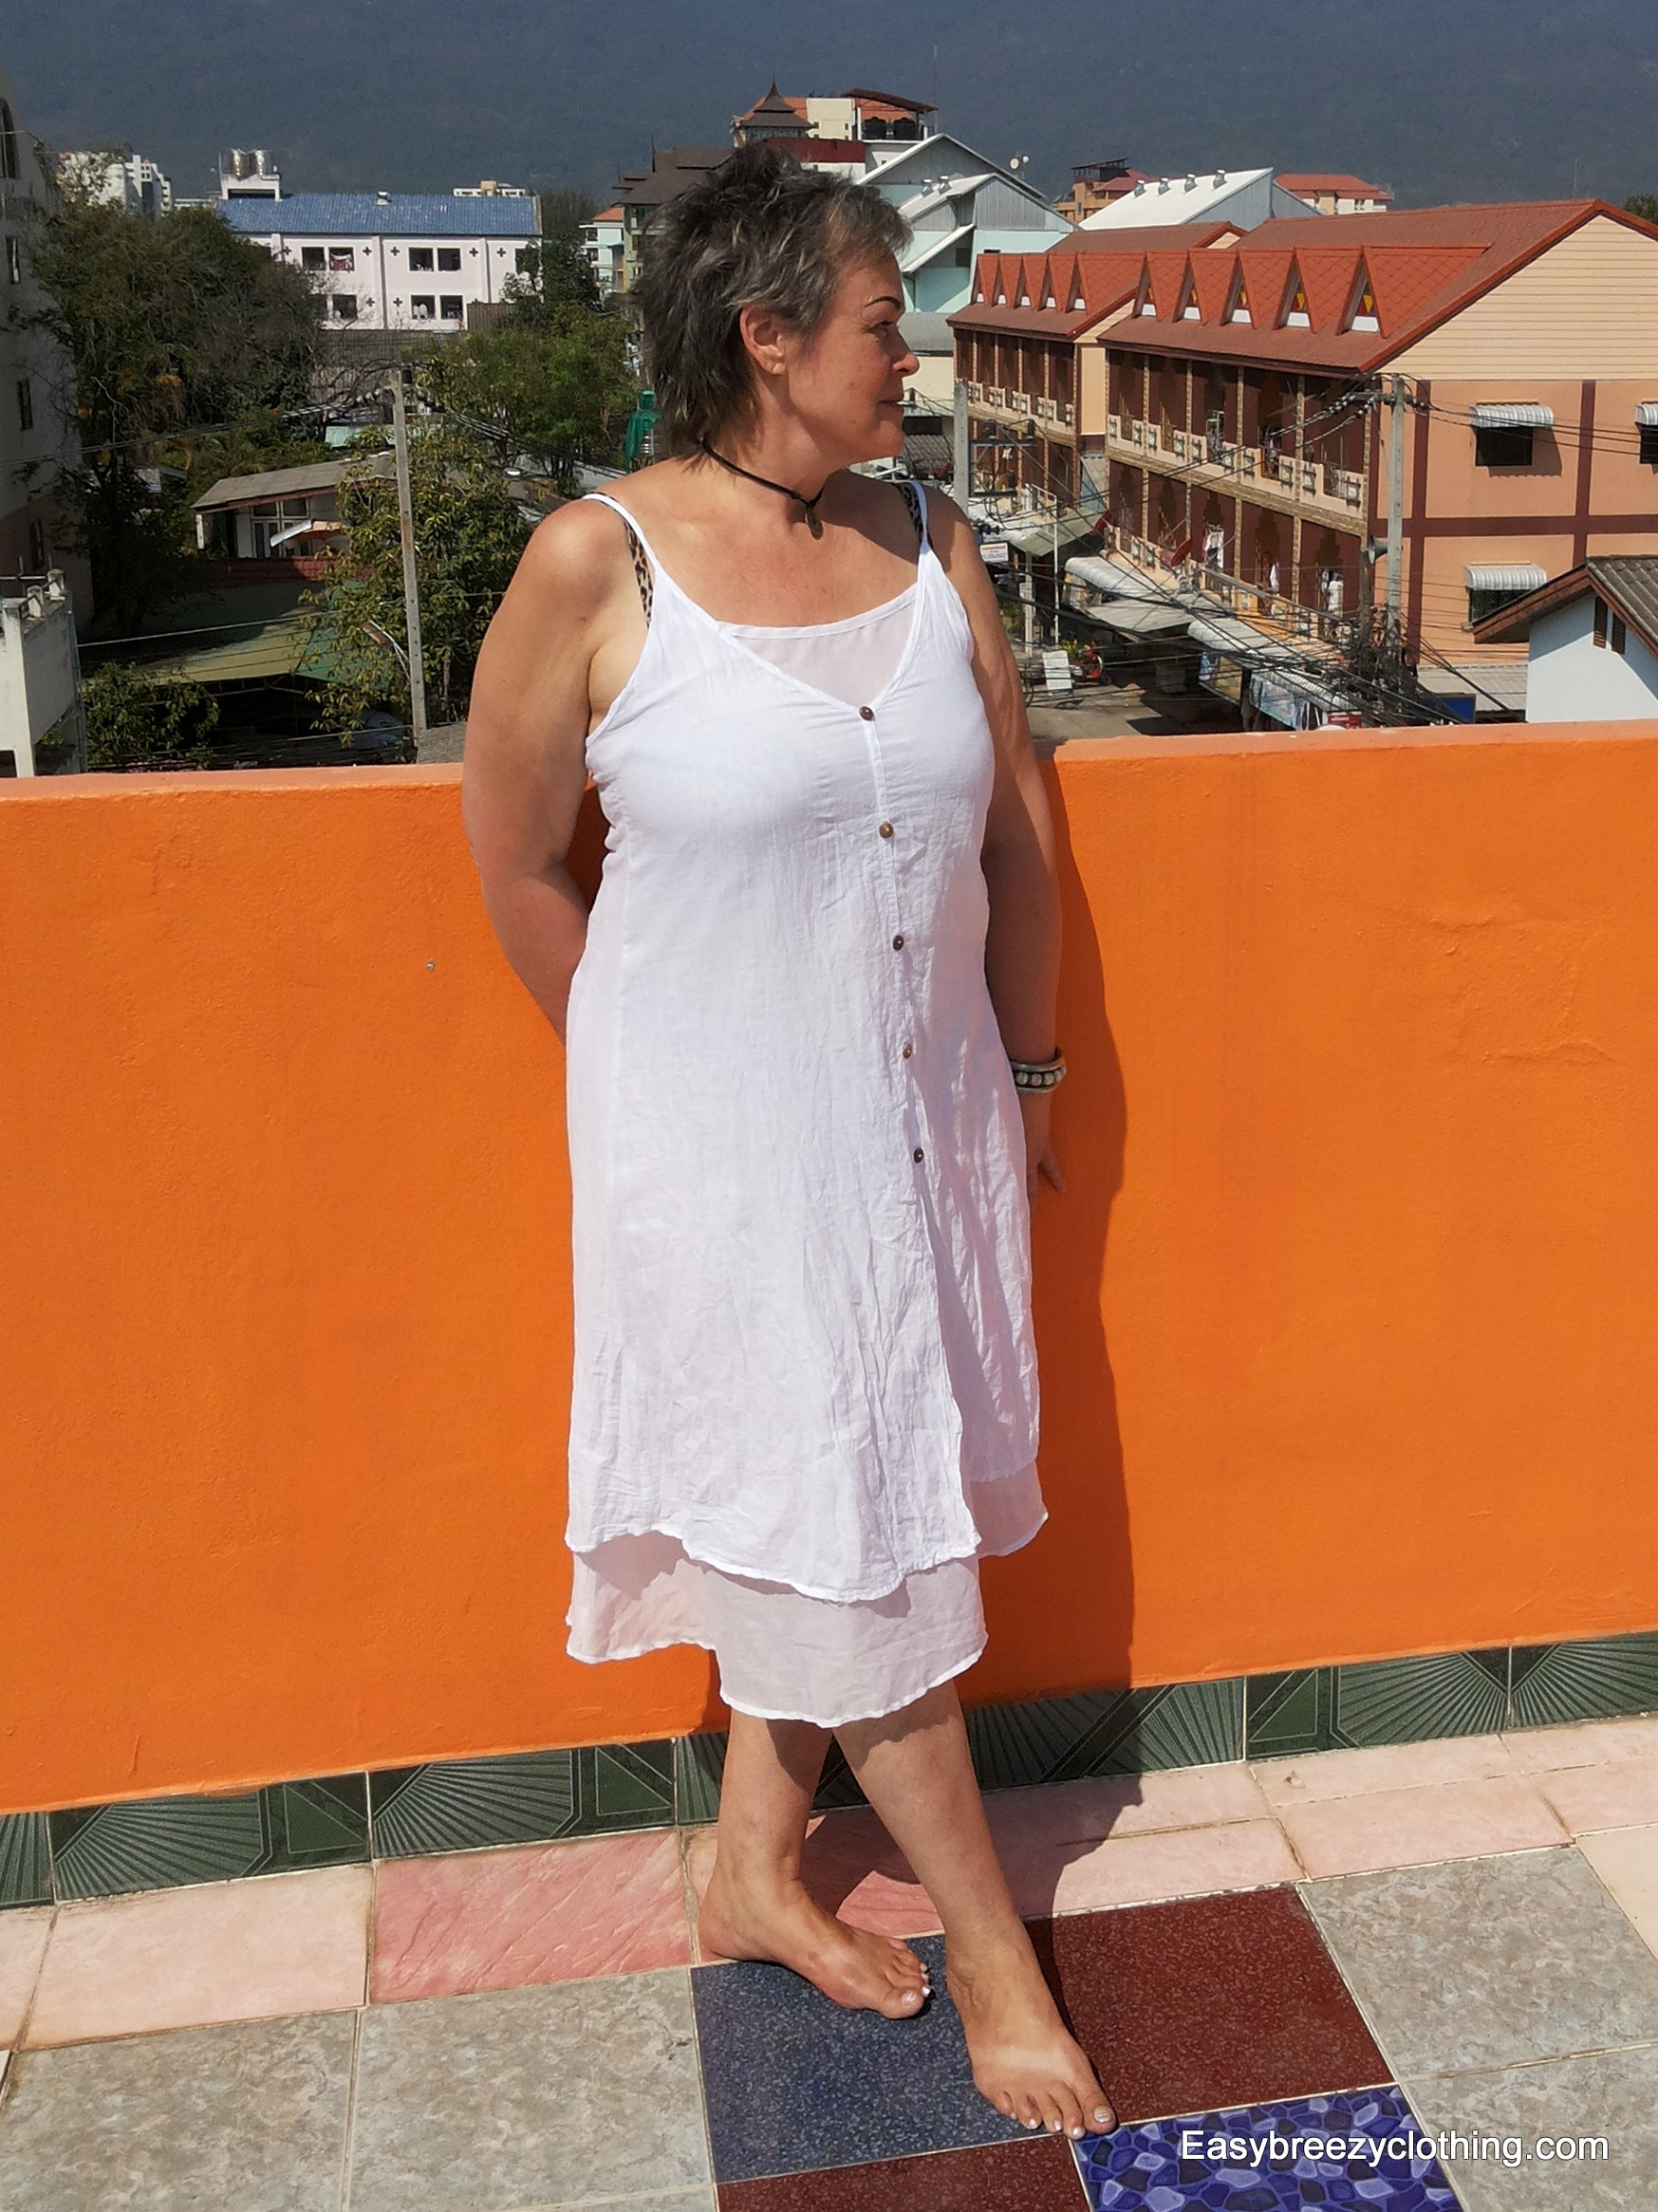 Cotton Midi Dress with Spaghetti Straps,Cotton Dresses,Easy Breezy Clothing,[Easy Breezy Clothing]